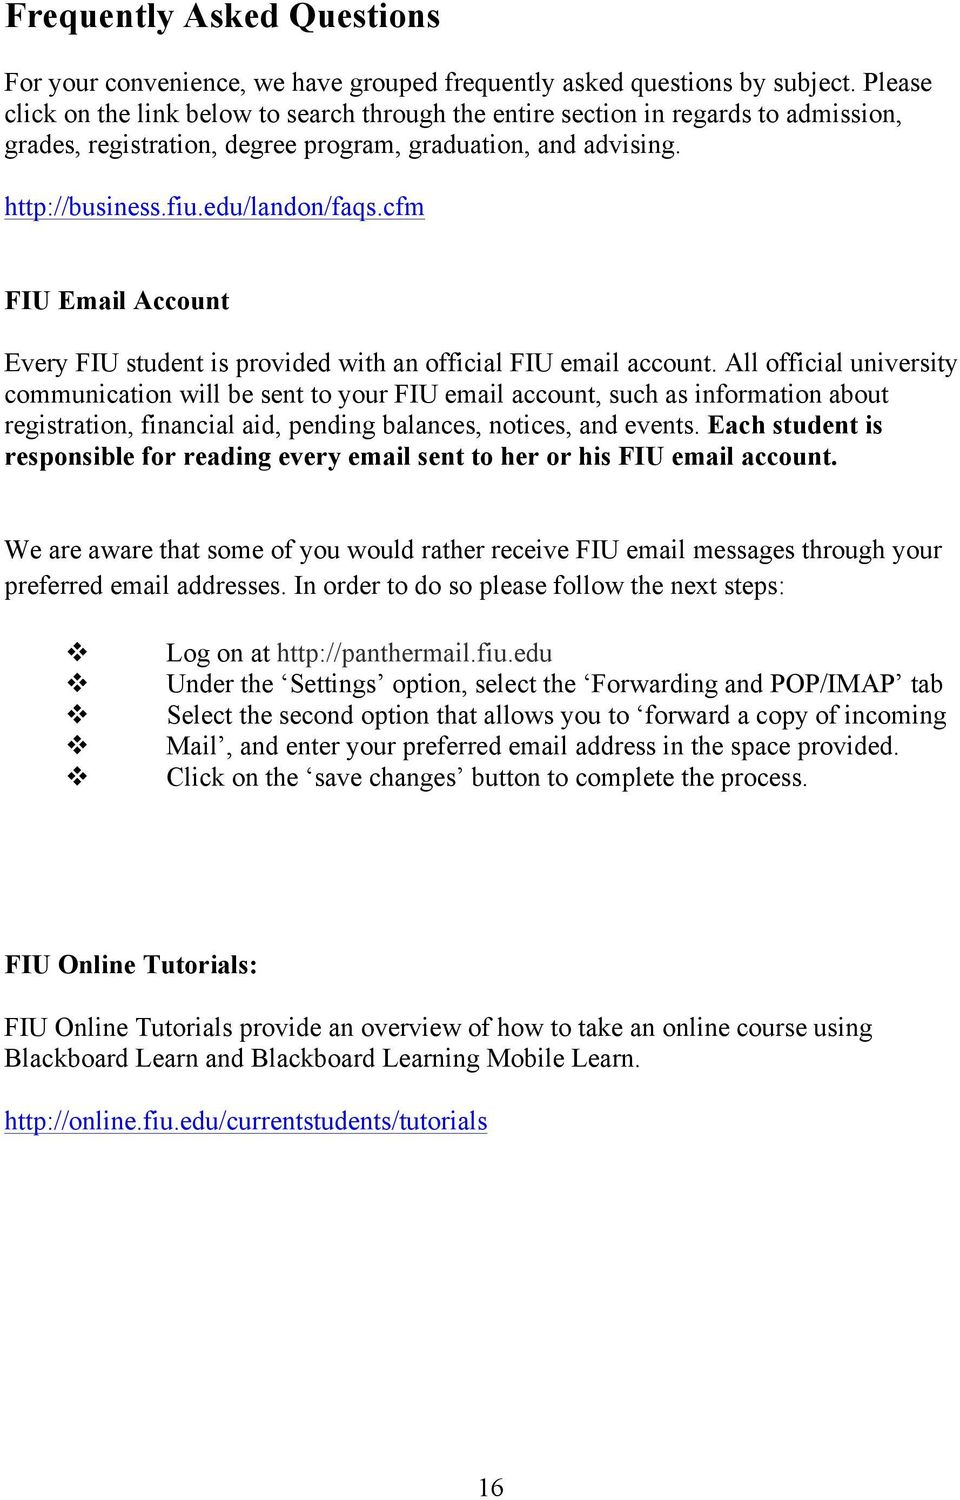 cfm FIU Email Account Every FIU student is provided with an official FIU email account.